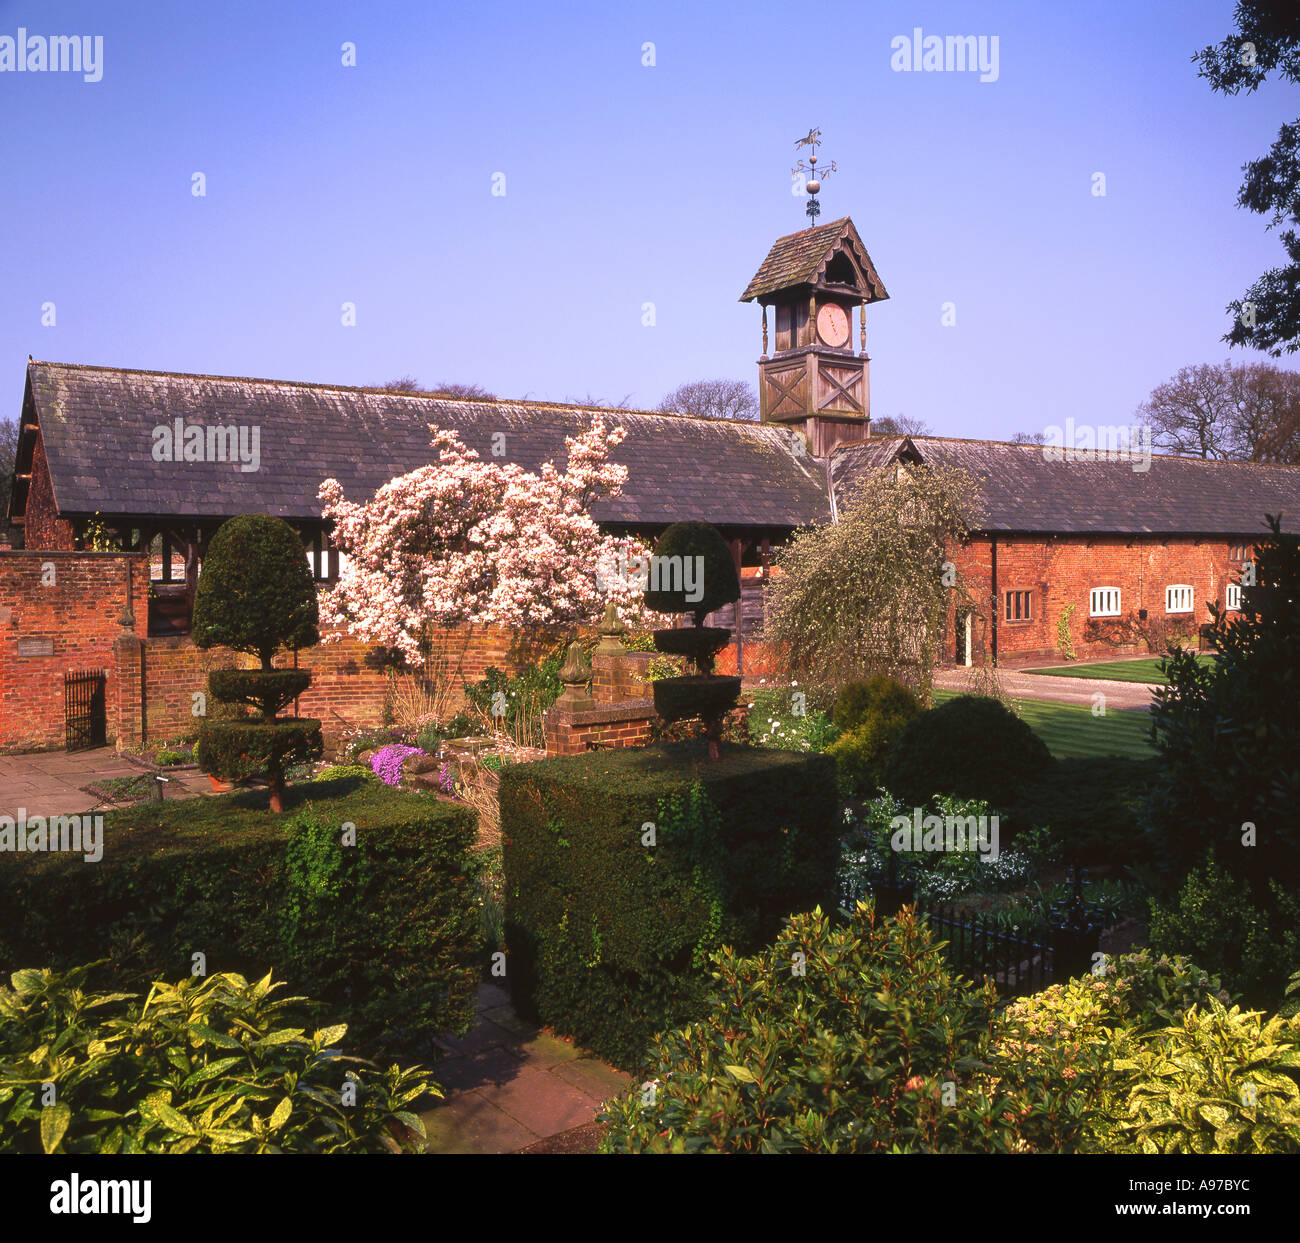 Tudor Clock Tower Stock Photos & Tudor Clock Tower Stock Images - Alamy